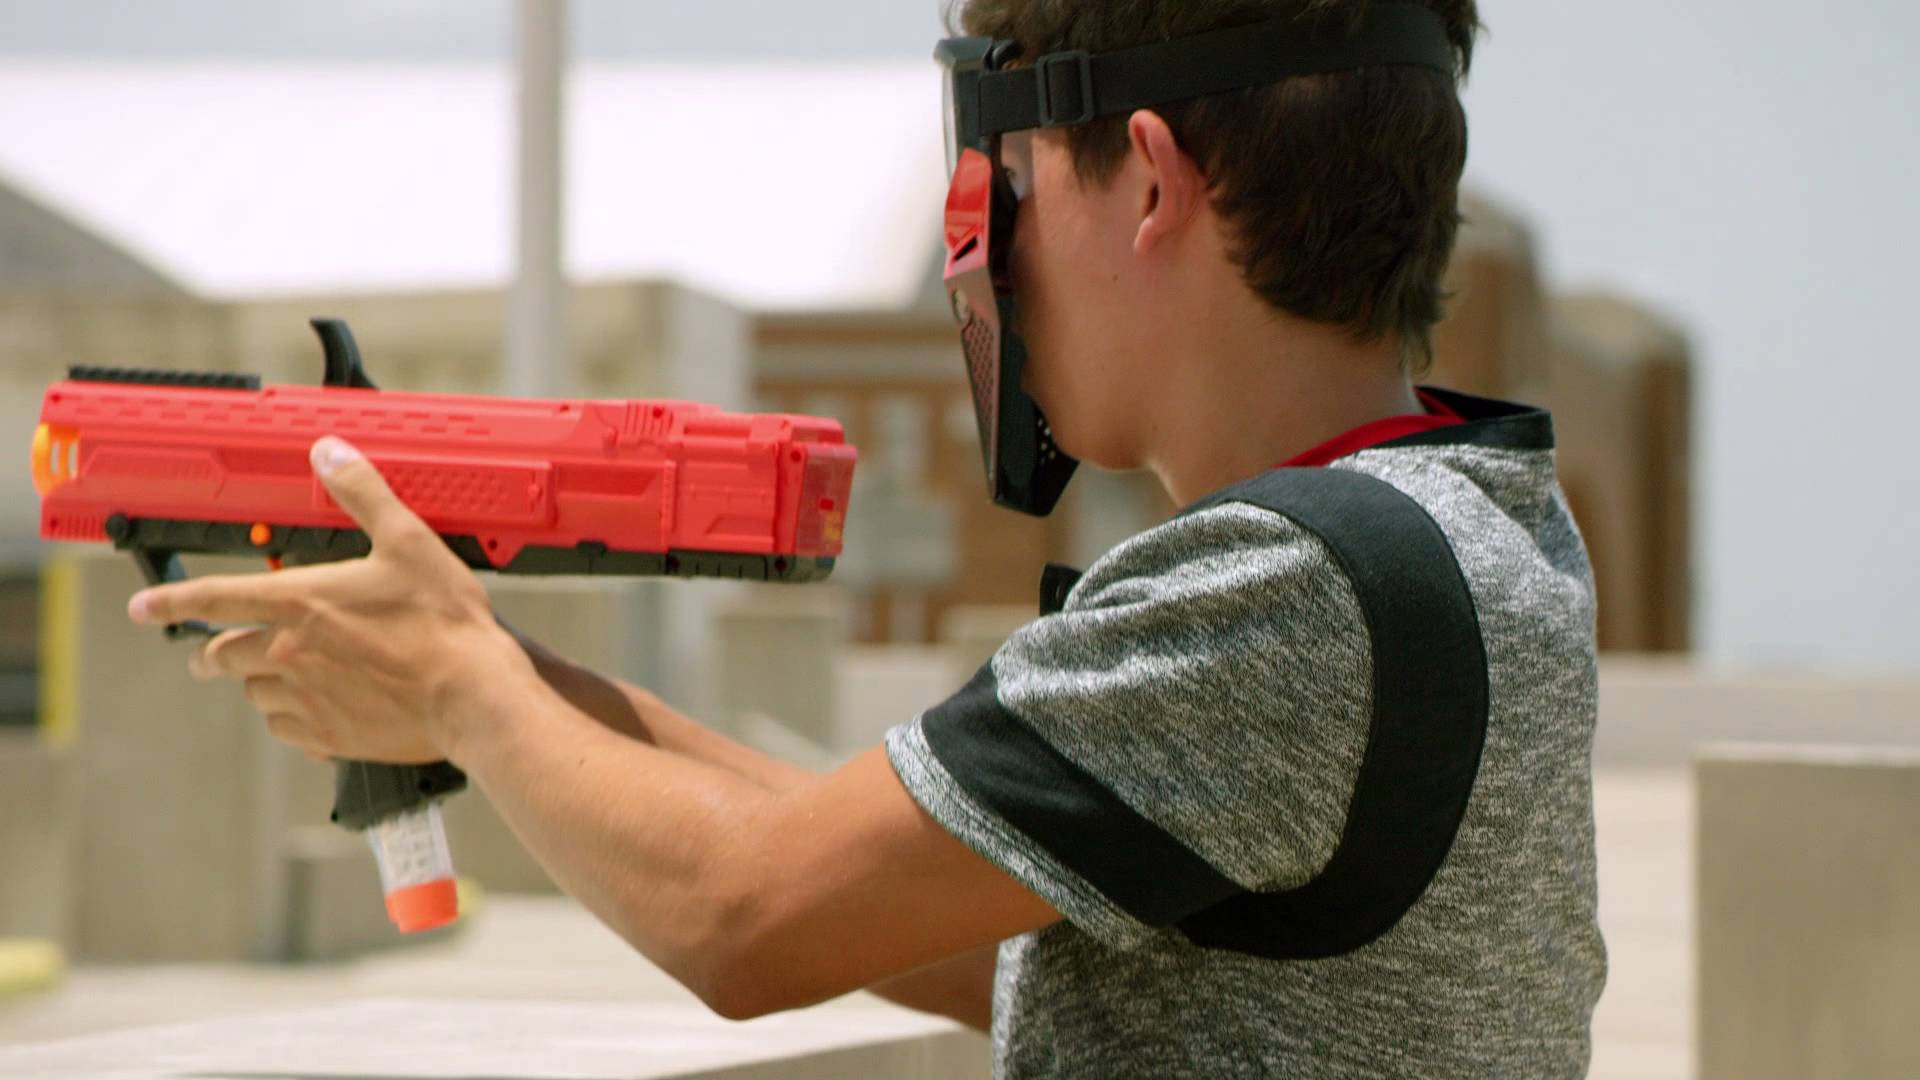 Nerf's new Rival line shoots balls at 70 MPH